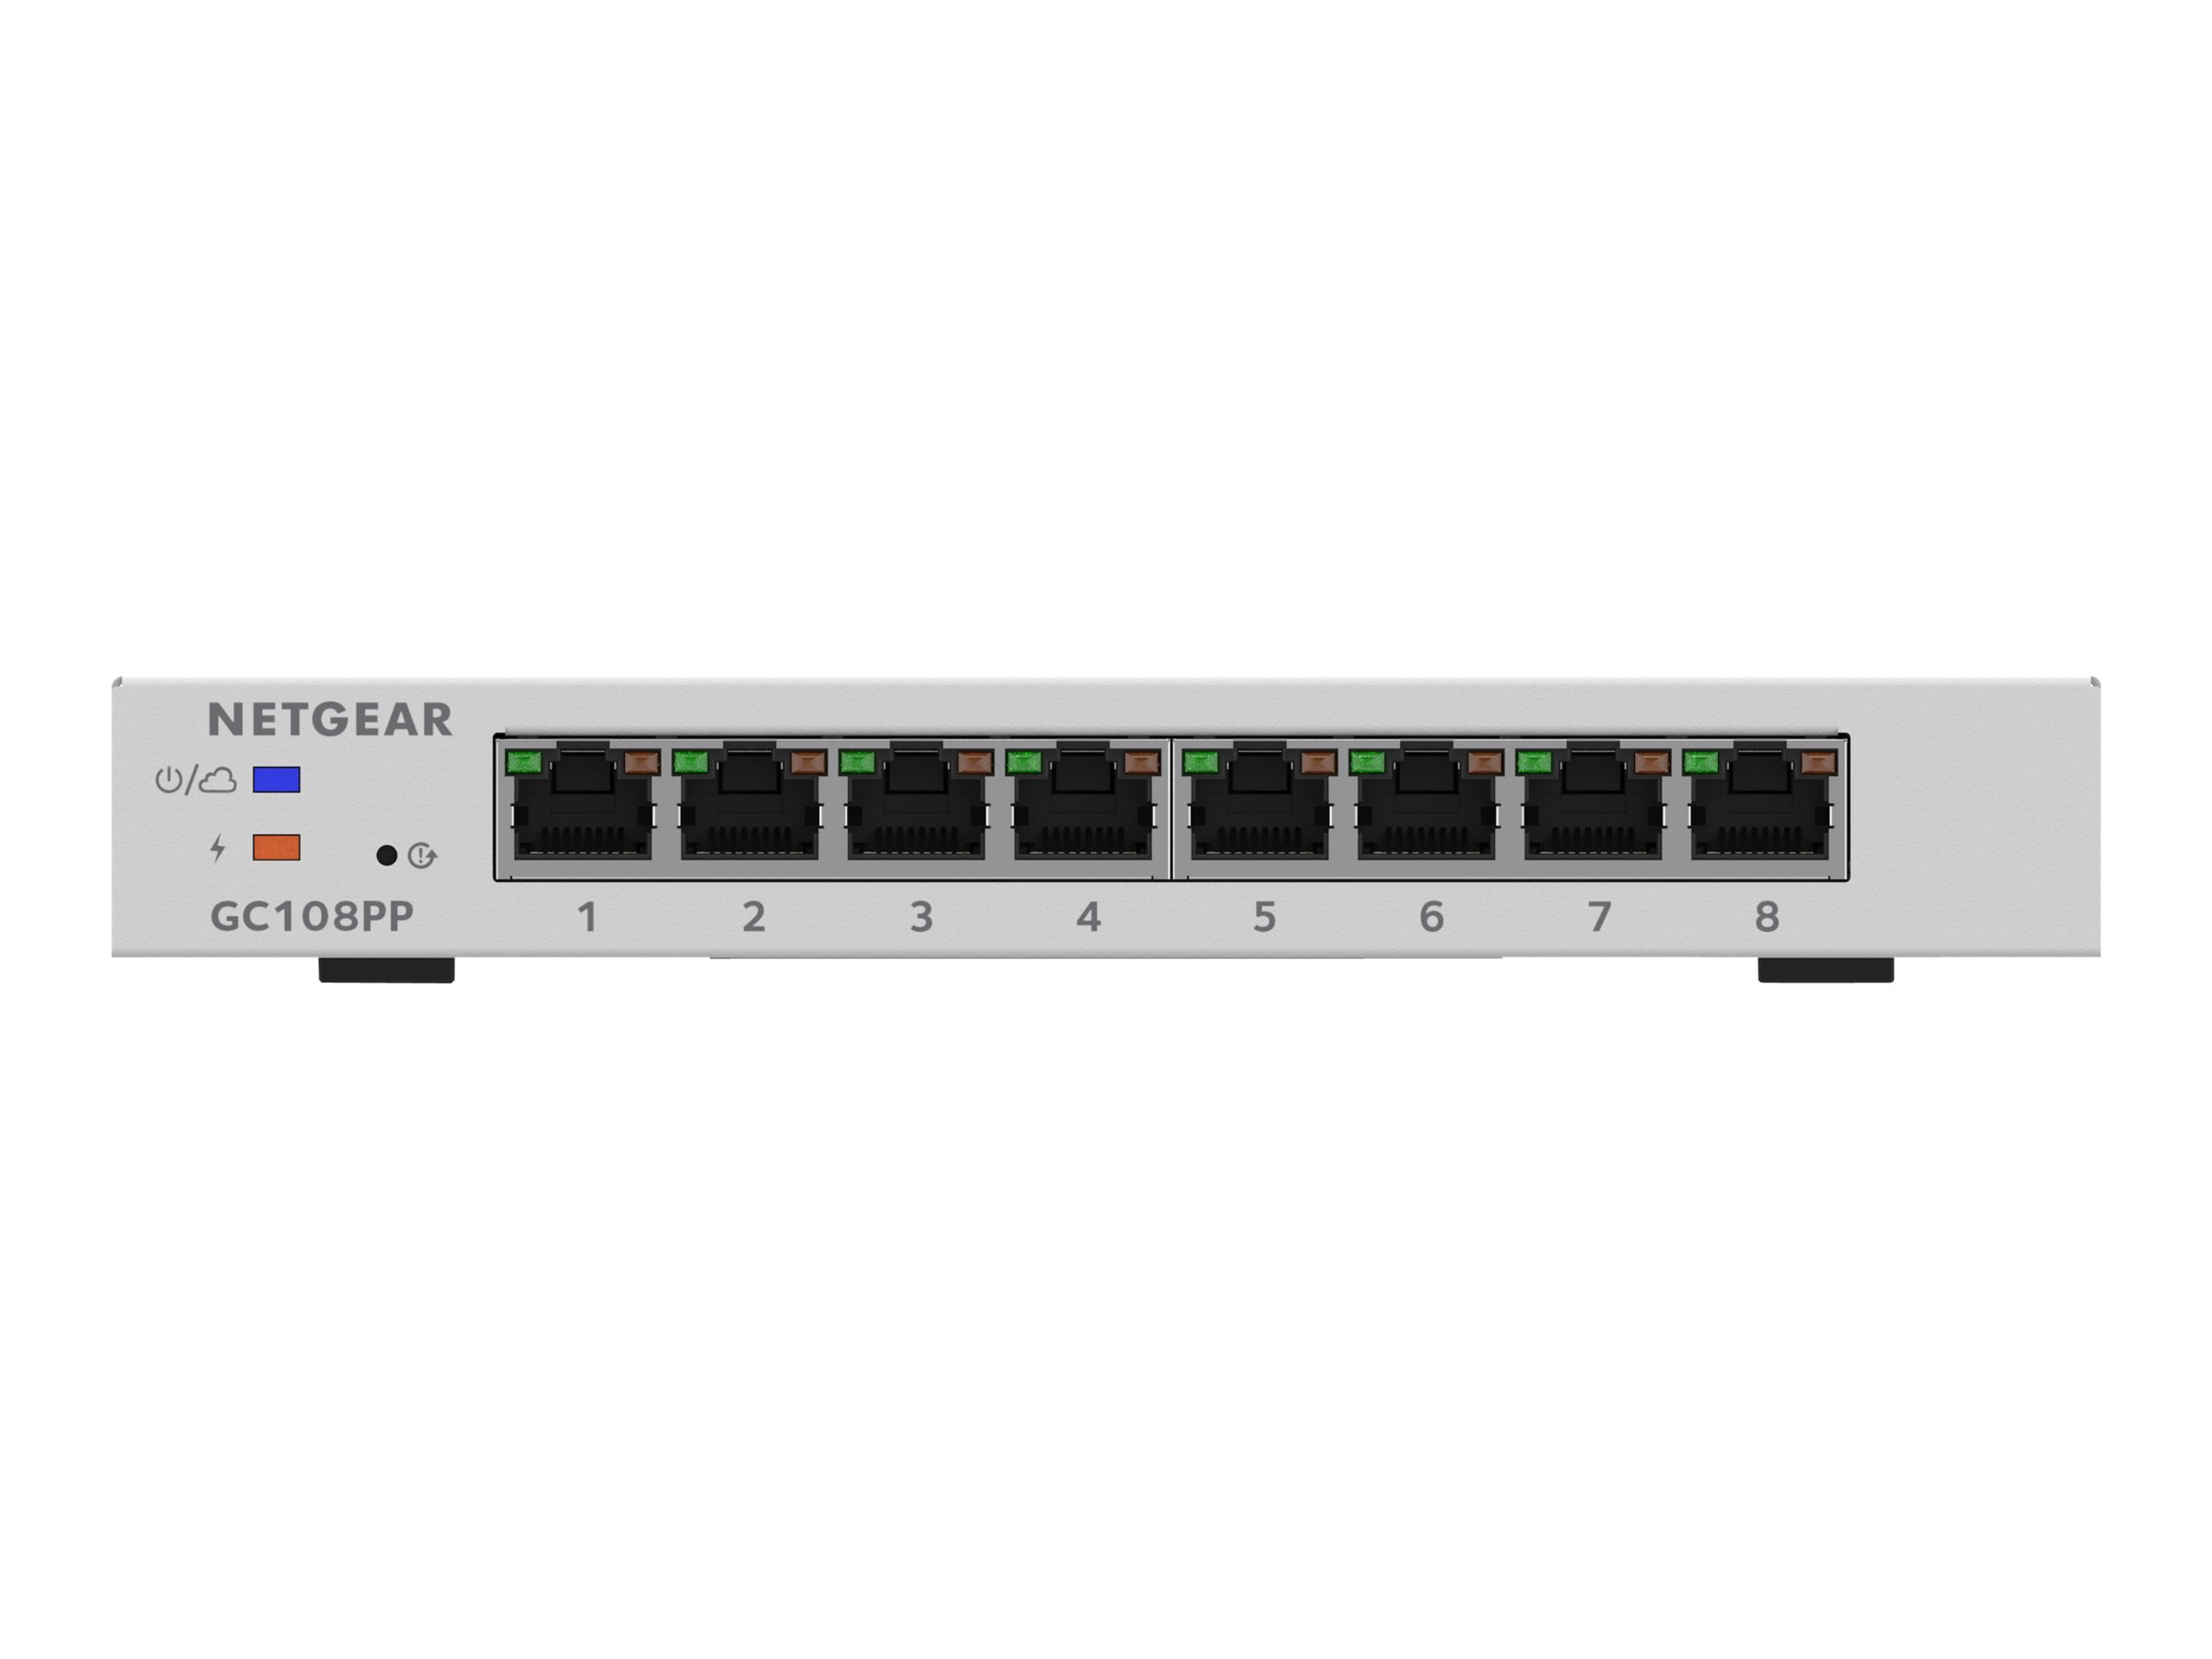 NETGEAR Smart GC108PP - switch - 8 ports - smart